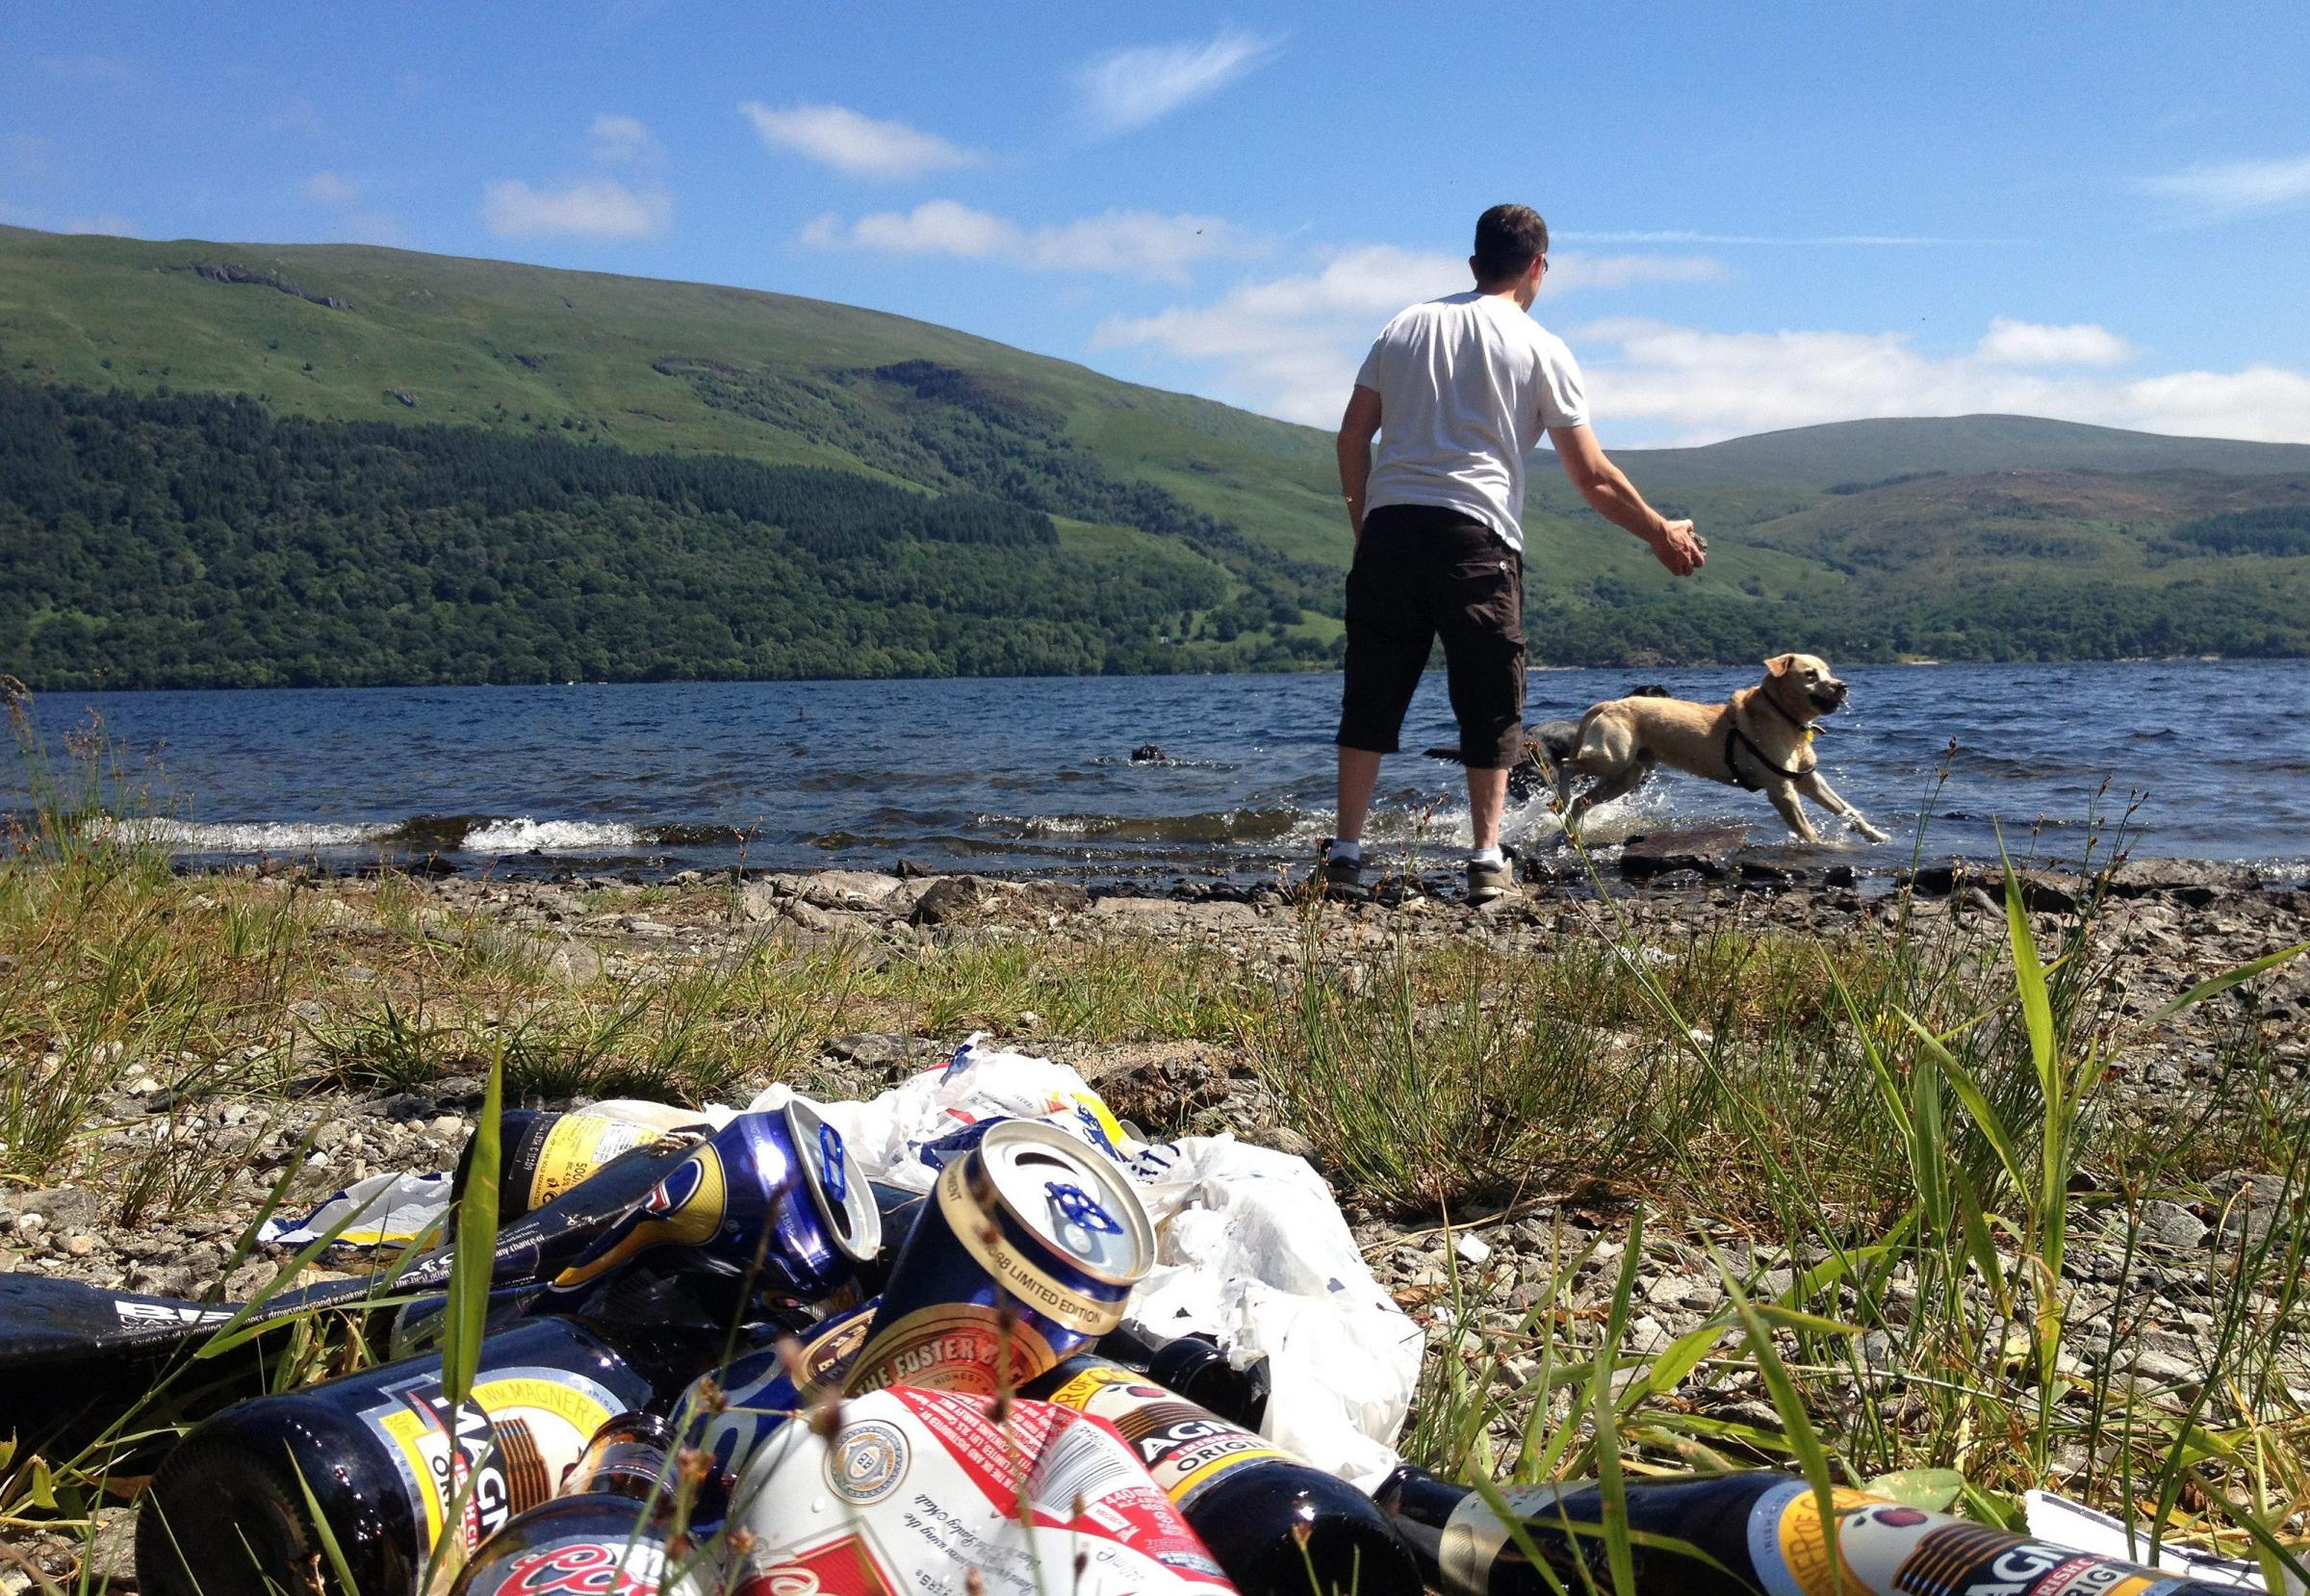 The national park has recently appointed a litter prevention manager